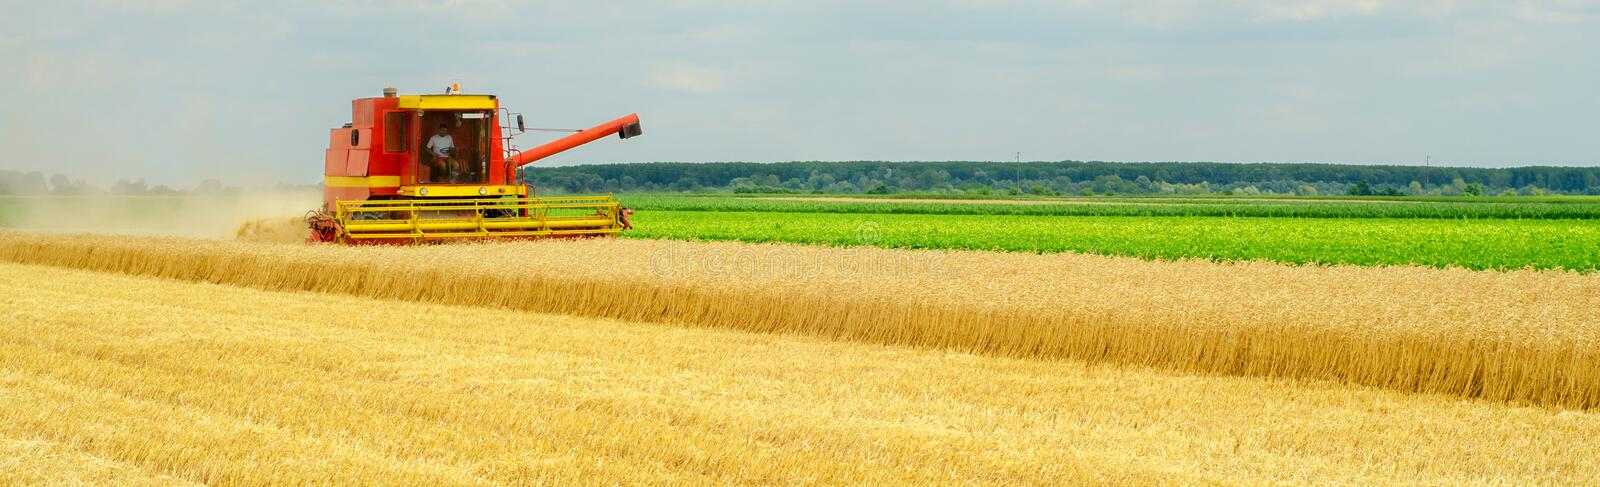 Harvester combine harvesting wheat in summer. Harvester combine harvesting wheat on cloudy summer day royalty free stock photography